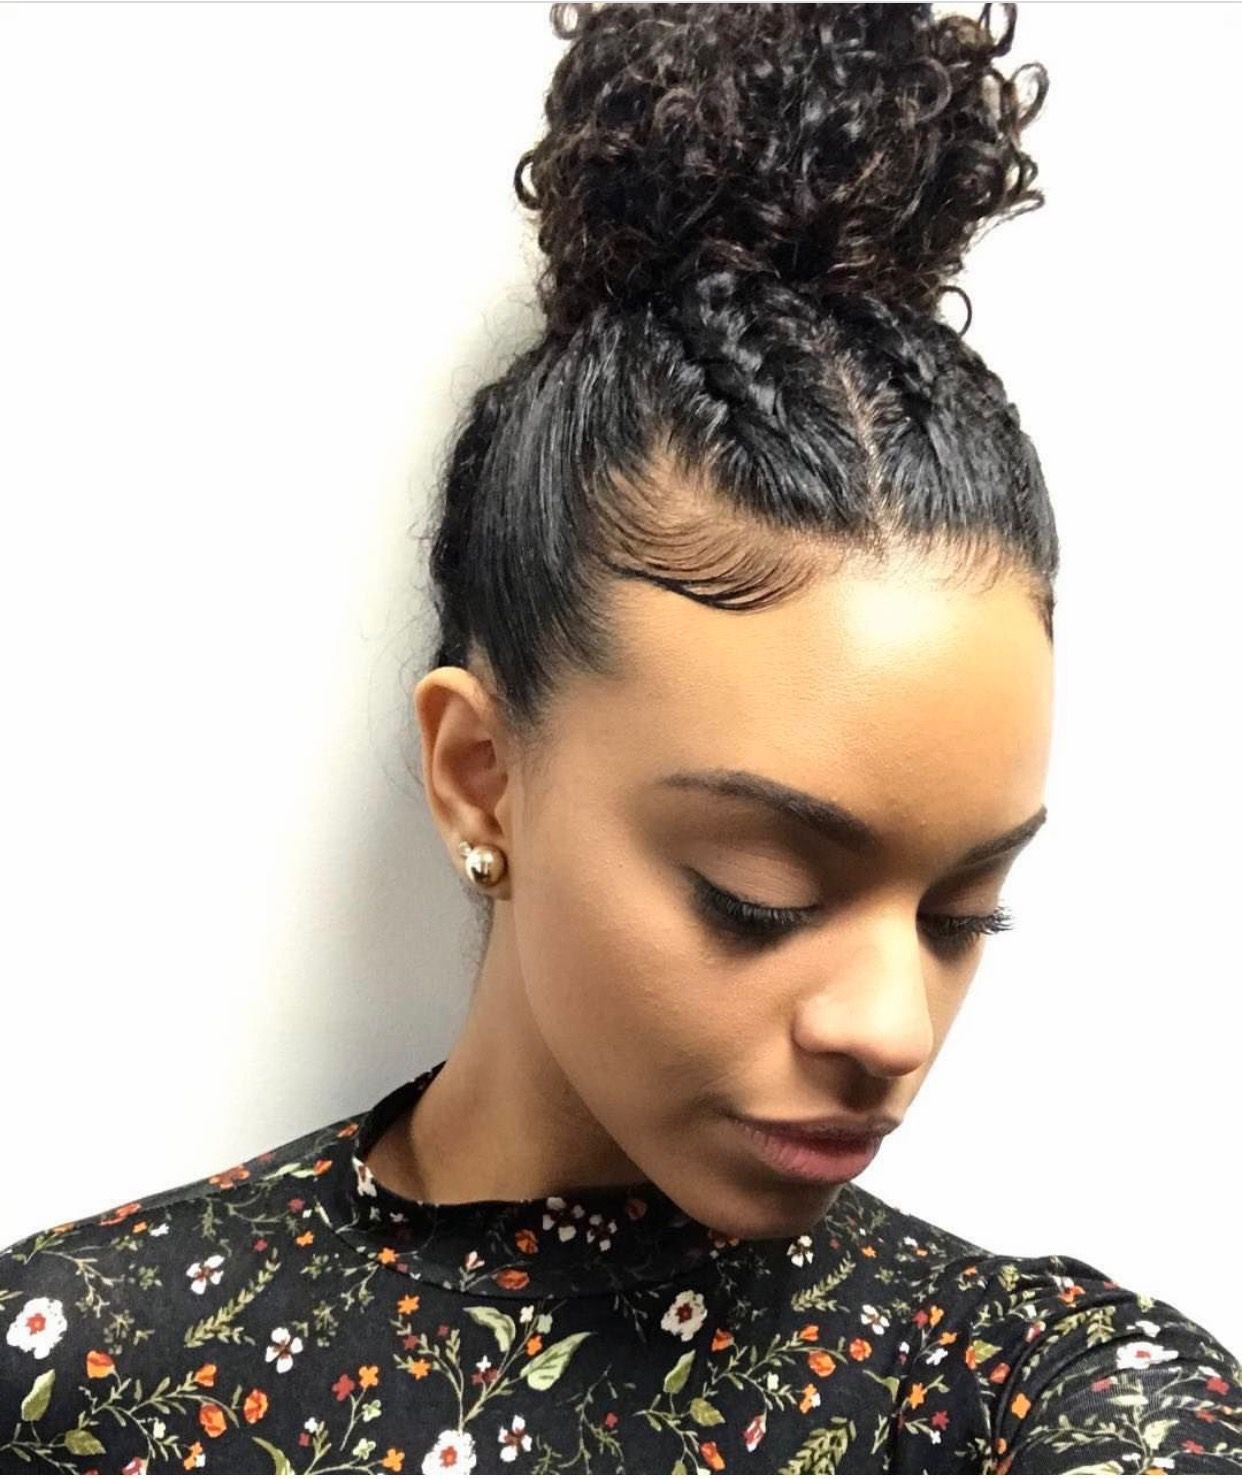 Best ideas about Cute Hairstyles For Mixed Hair . Save or Pin Pin by Obsessed Hair on Hair Tips & Hair Care Now.